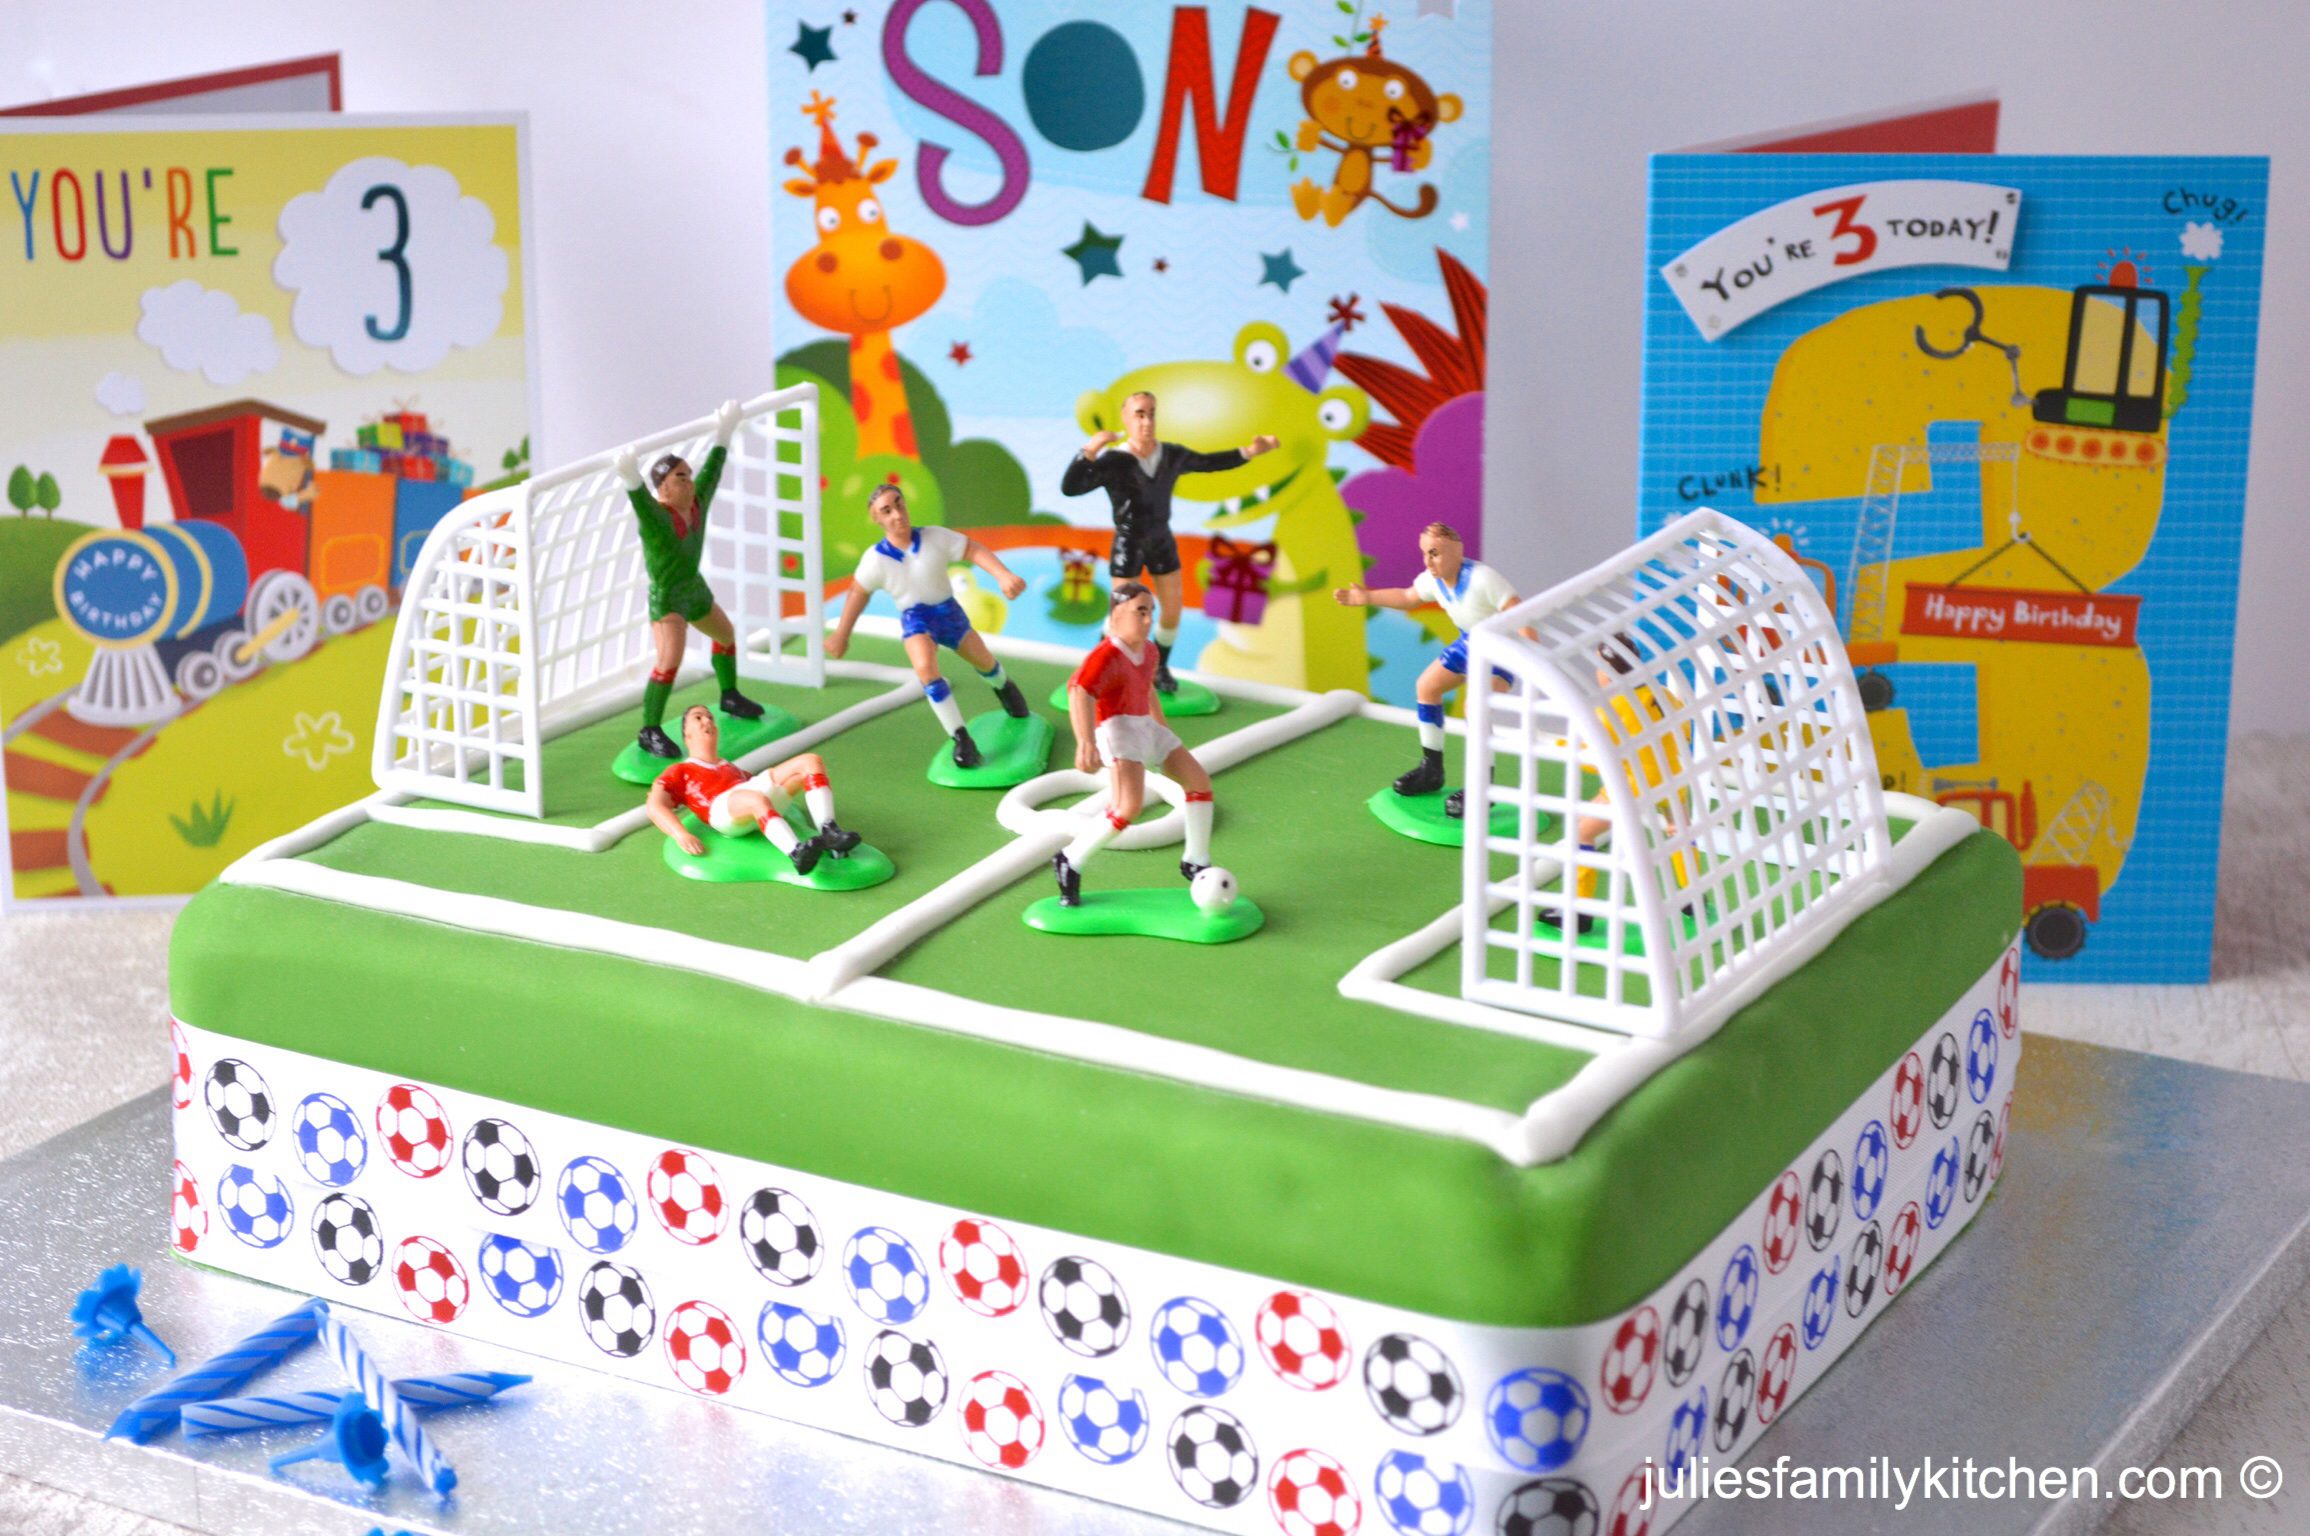 Julies Family Kitchen Football Game Birthday Cake